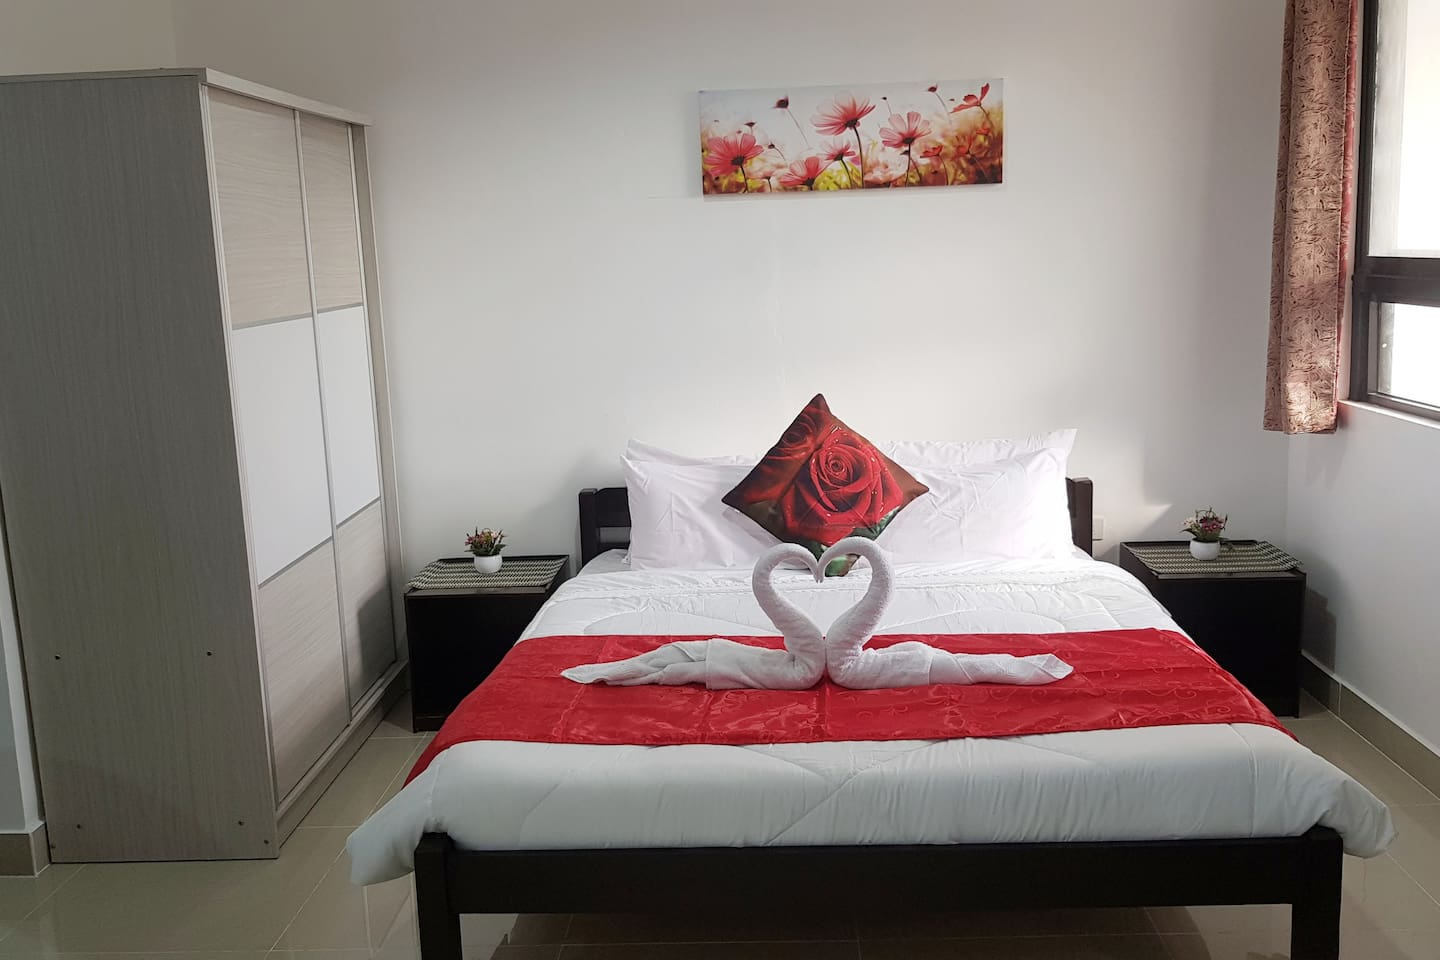 Main king size bed